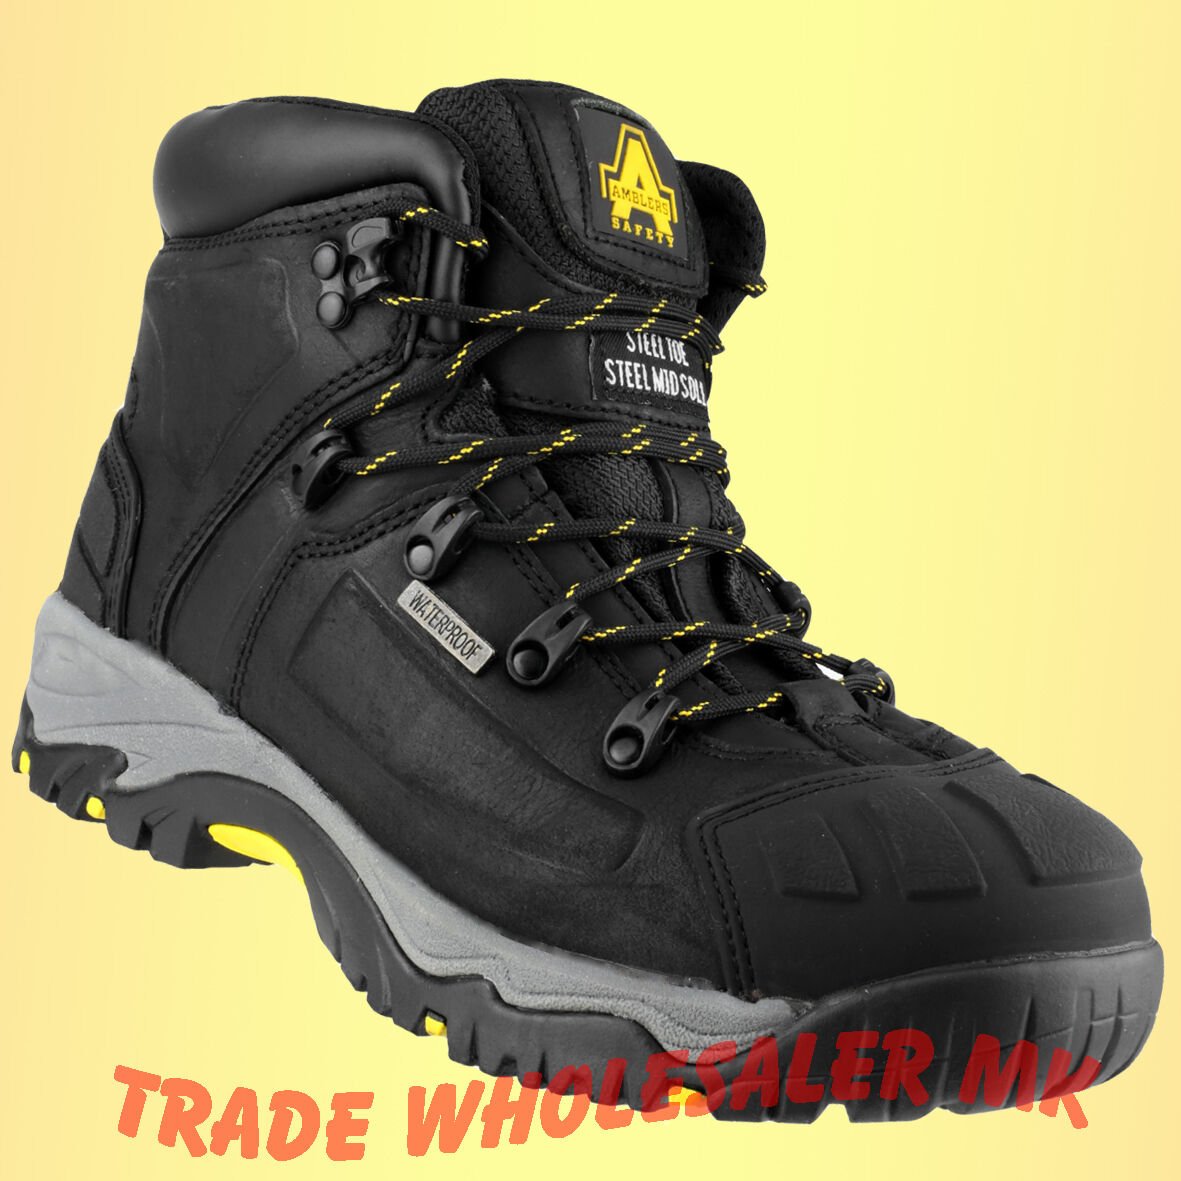 MENS AMBLERS WATERPROOF MED WAY SAFETY Stiefel UK GrößeS STEEL TOE WORK Stiefel